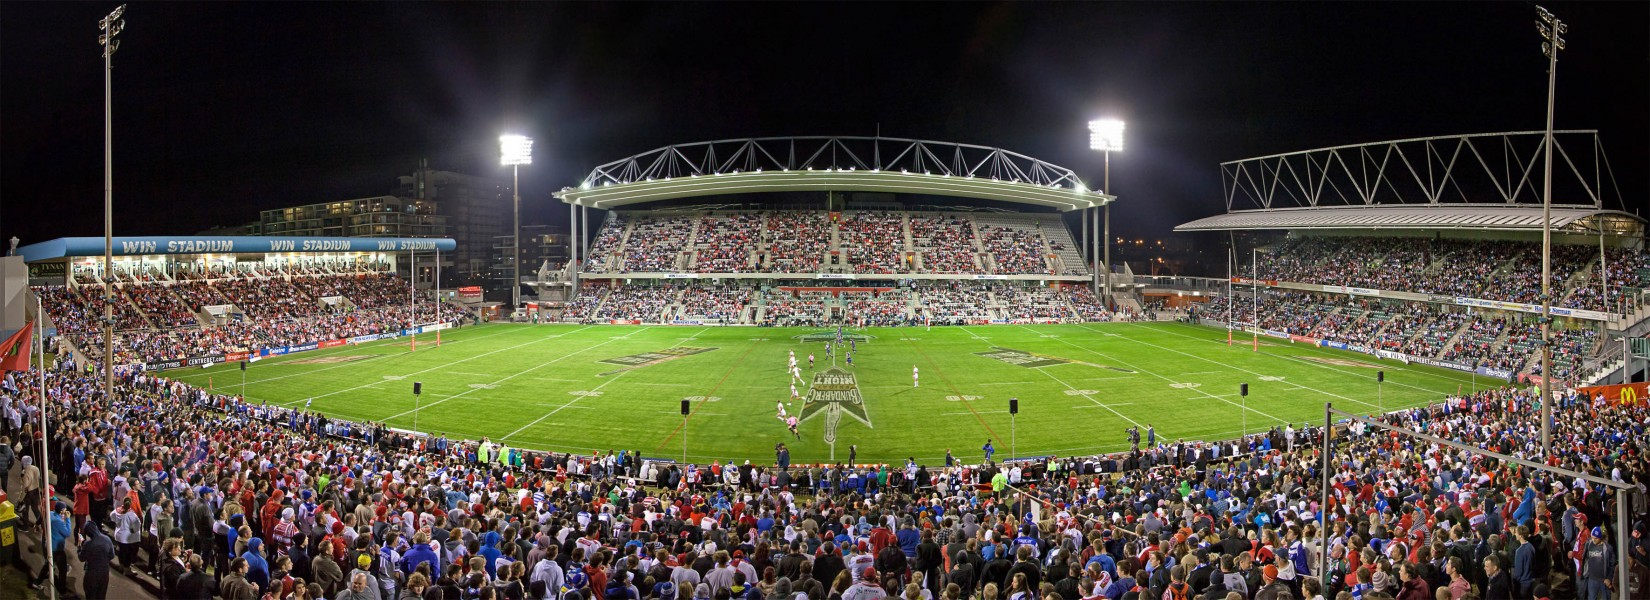 NRL hit by declining broadcast viewing figures